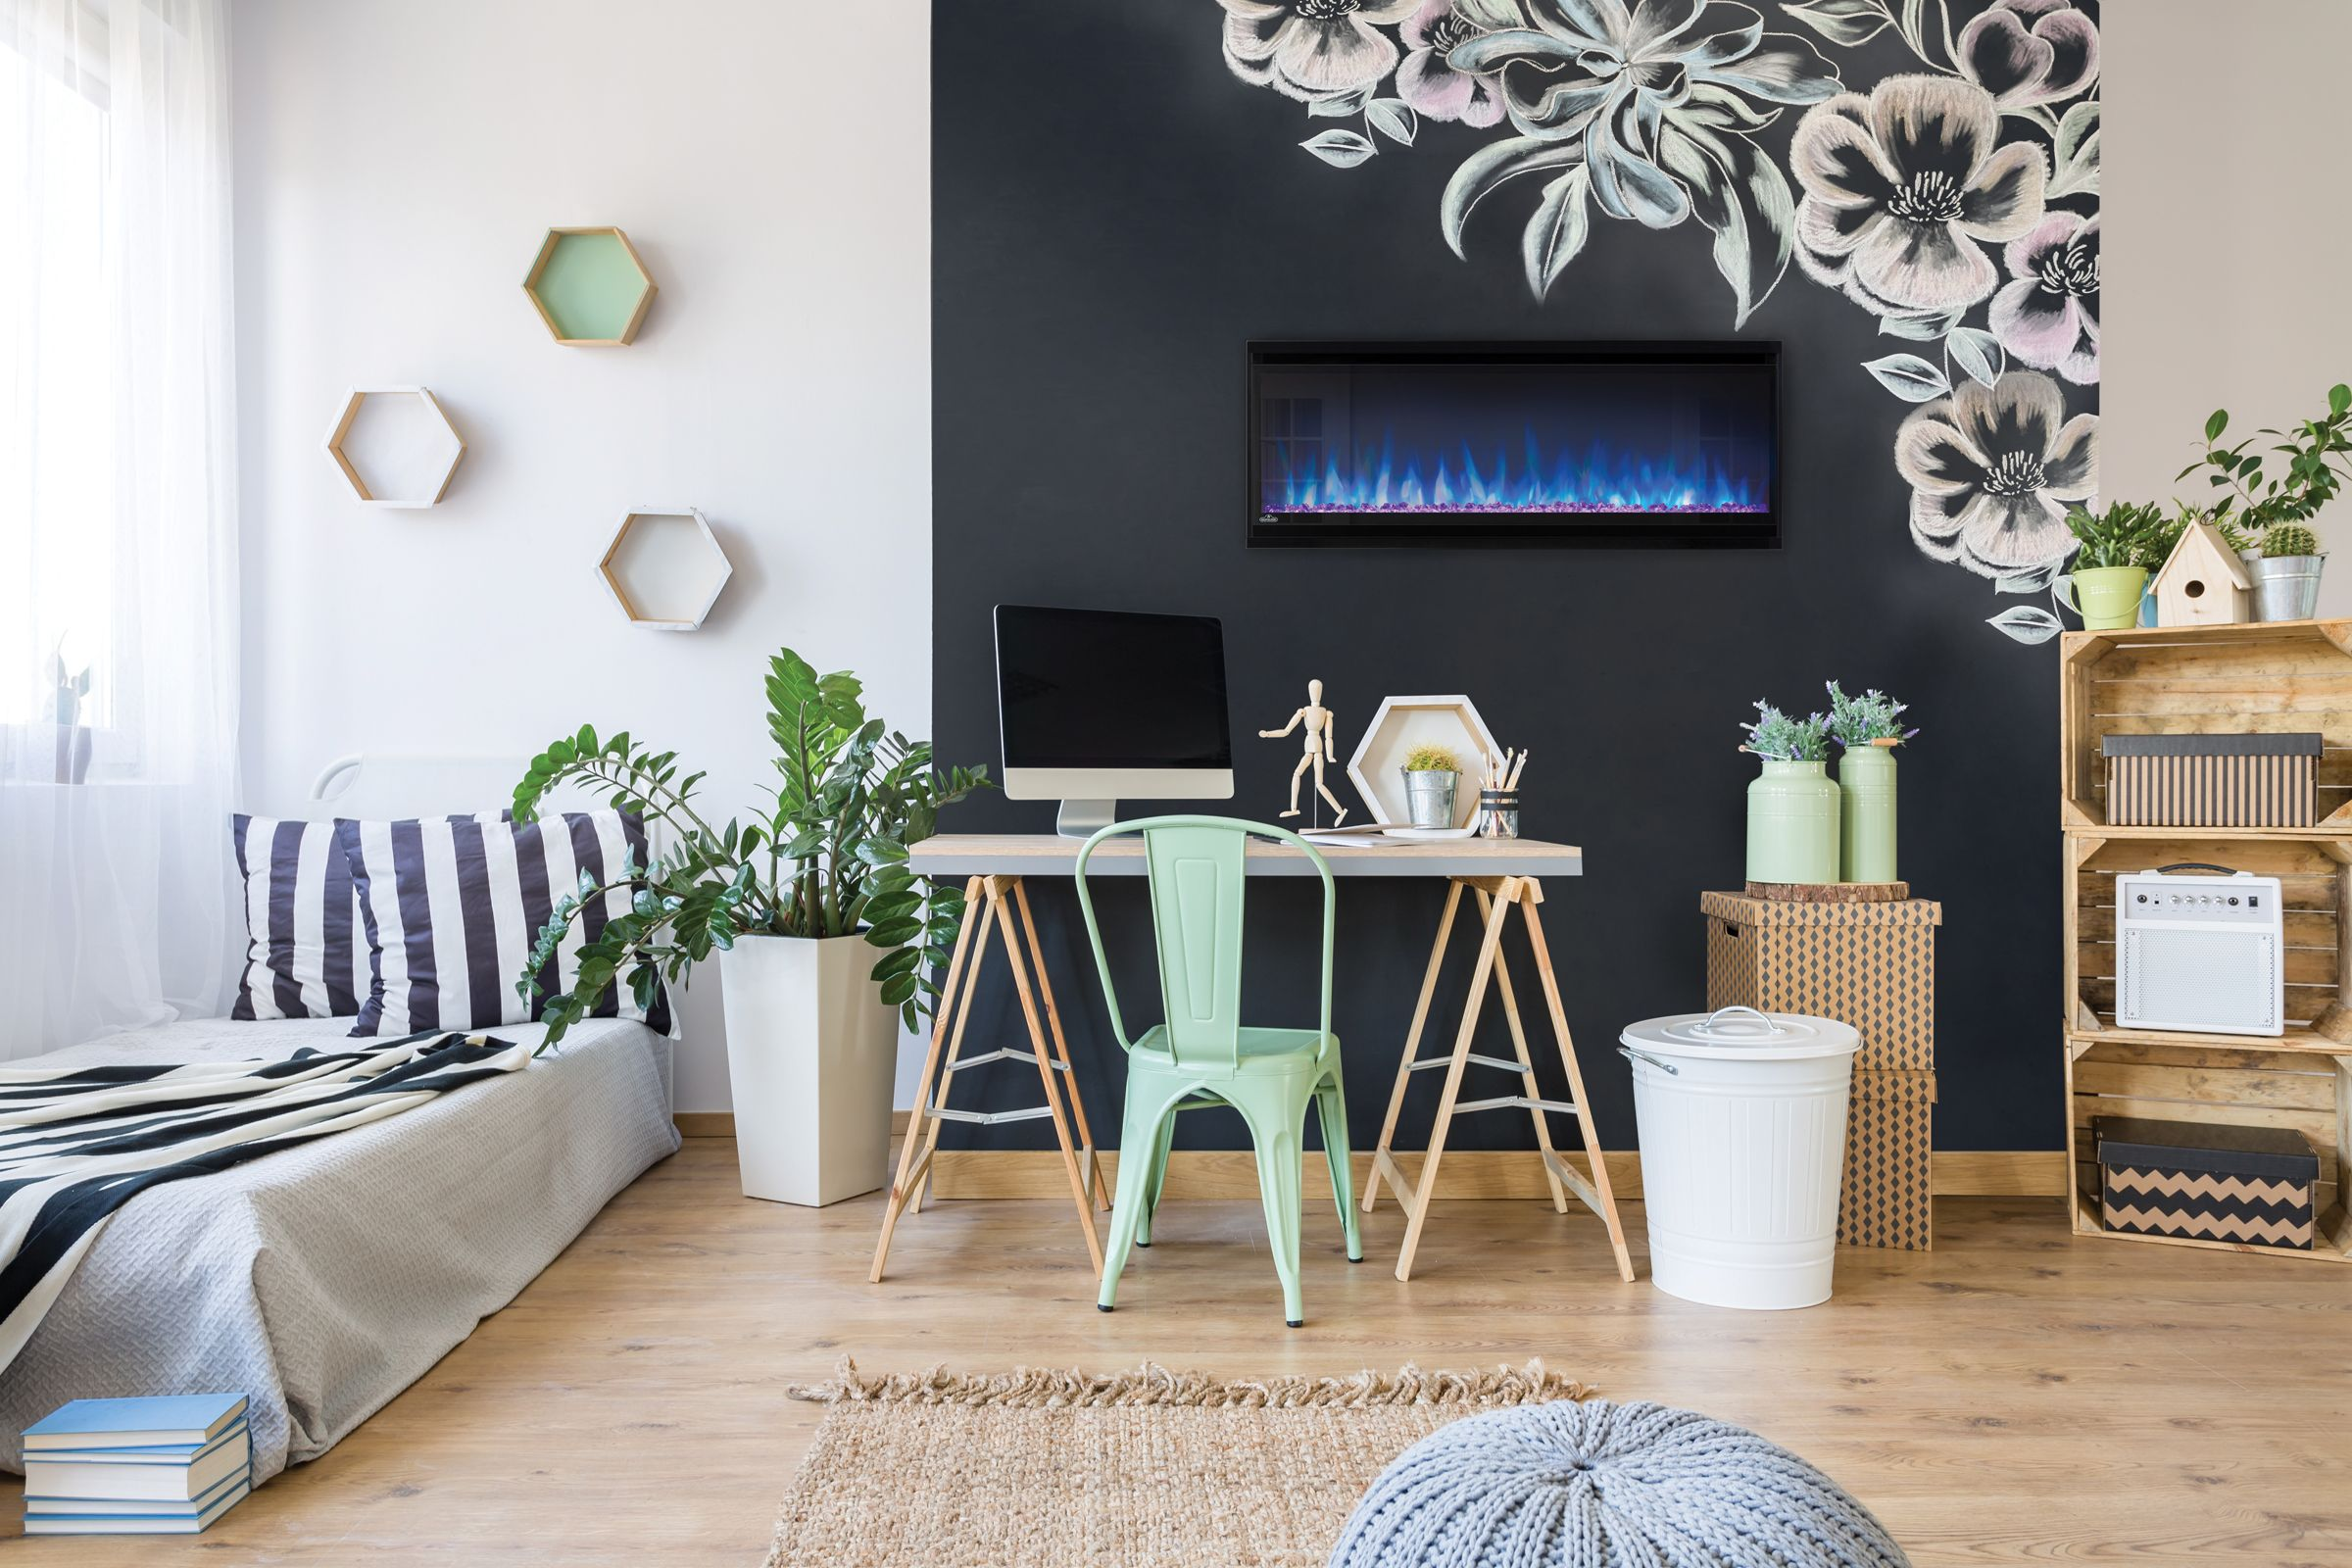 Can I Have a Fireplace in an Apartment?